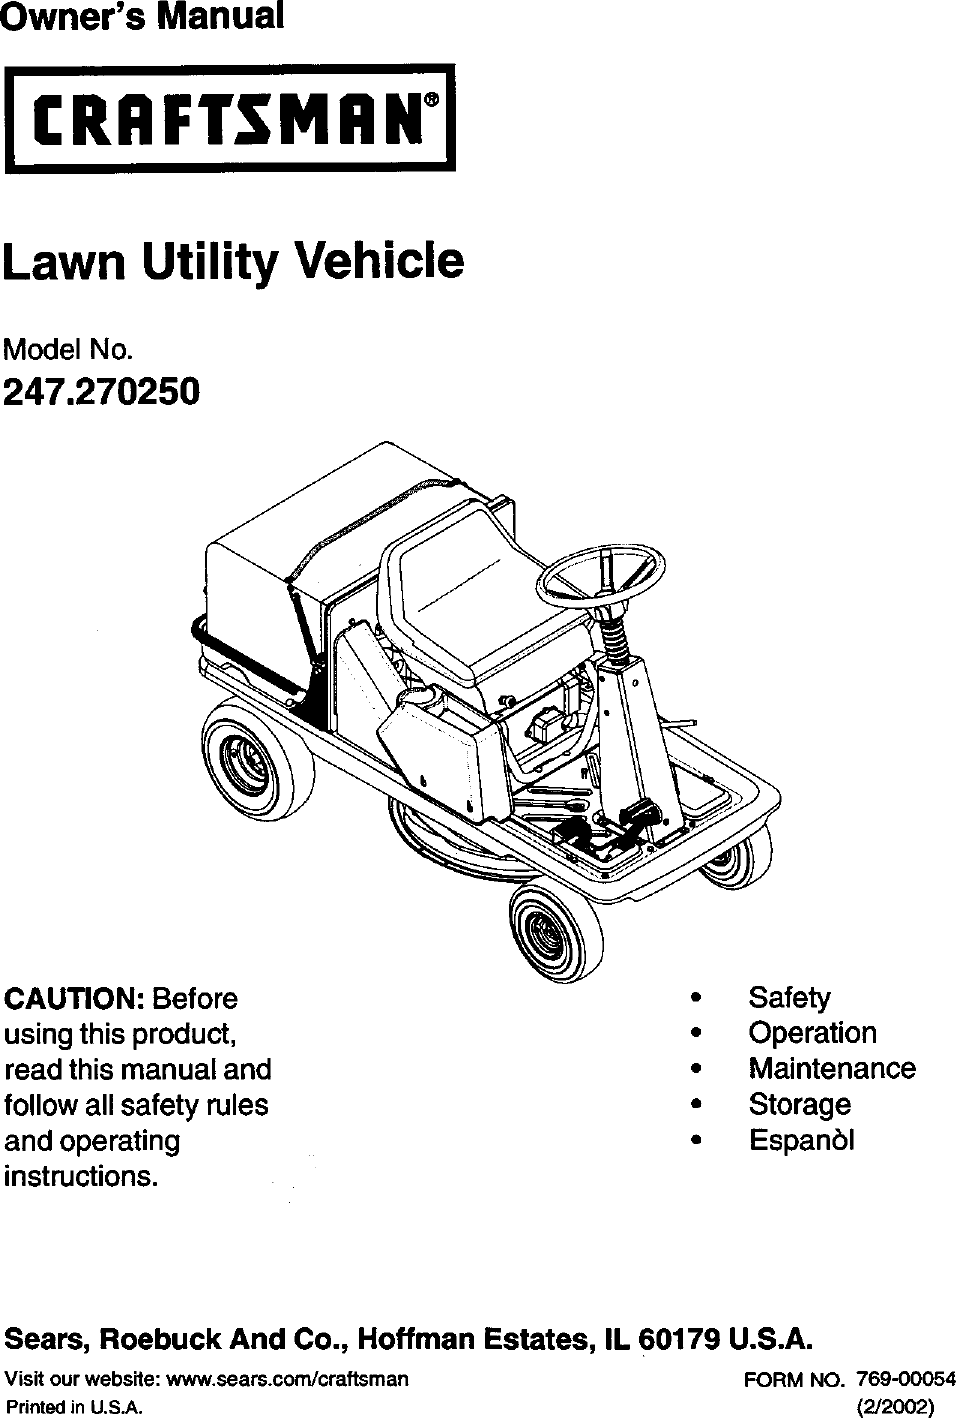 Craftsman 270 Users Manual